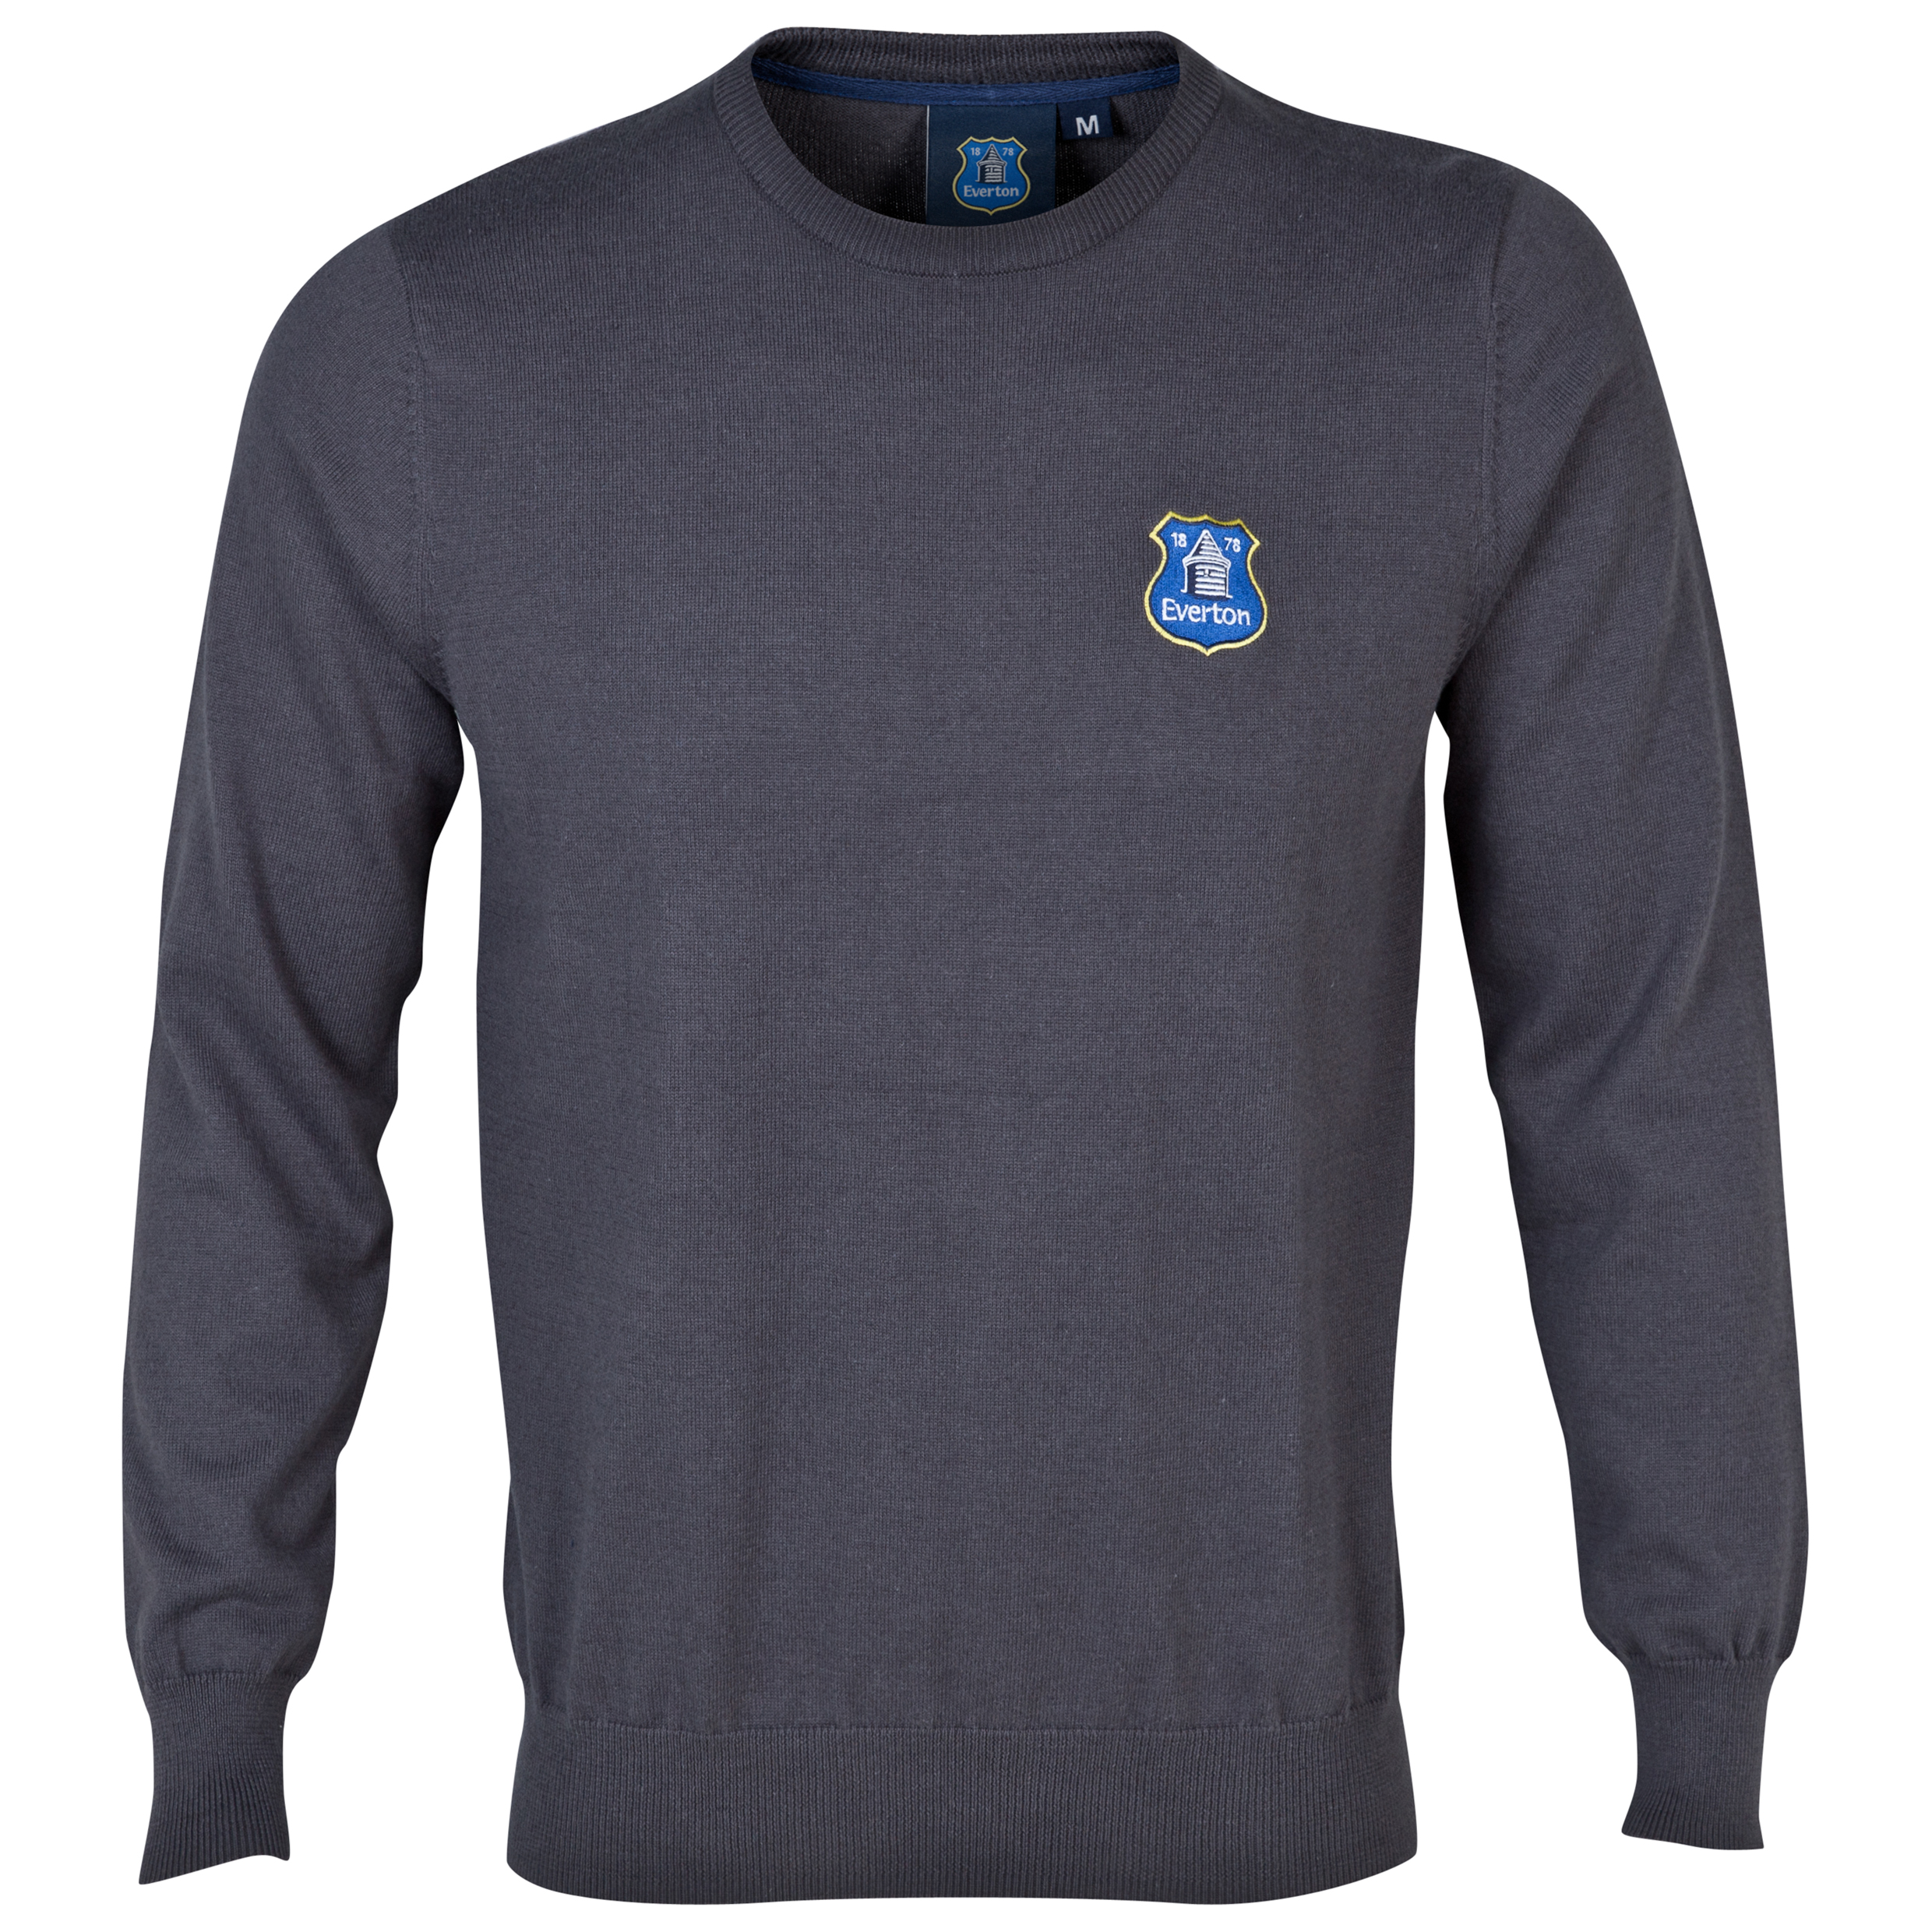 Everton Essentials Spindle Crew Neck Jumper Dk Grey